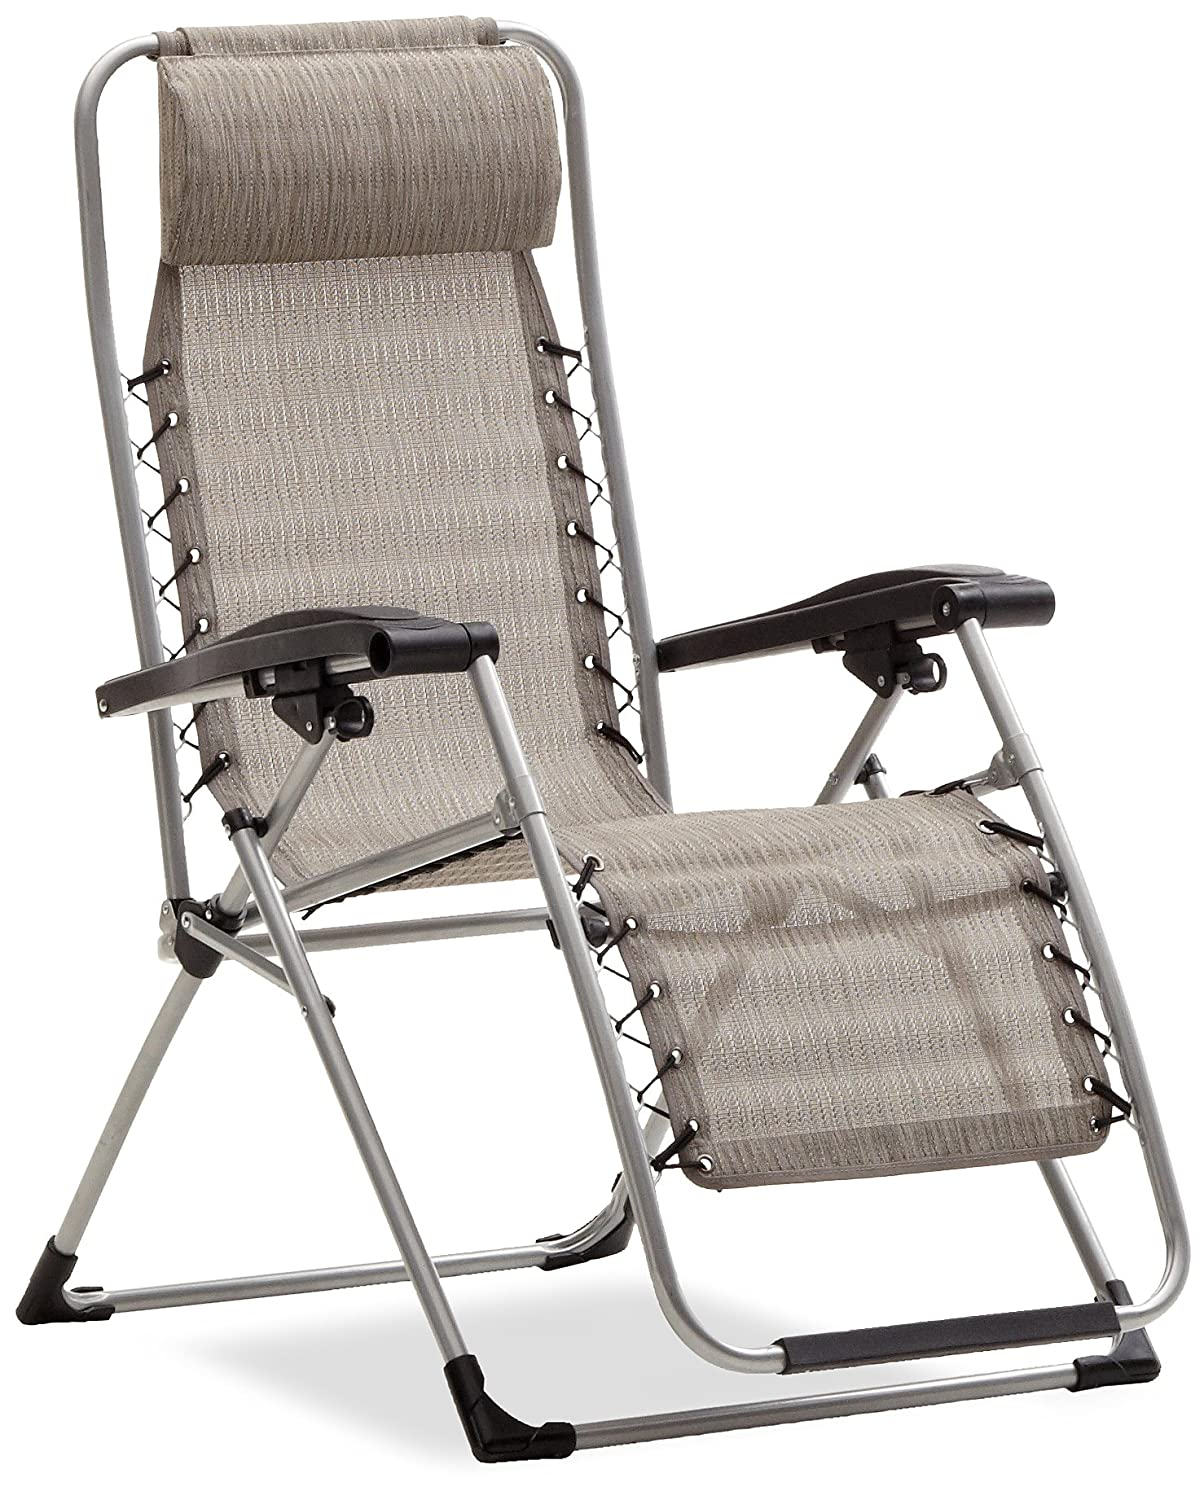 Amazon.com : Strathwood Basics Anti-Gravity Adjustable Recliner Chair,  Natural : Patio Lounge Chairs : Garden & Outdoor